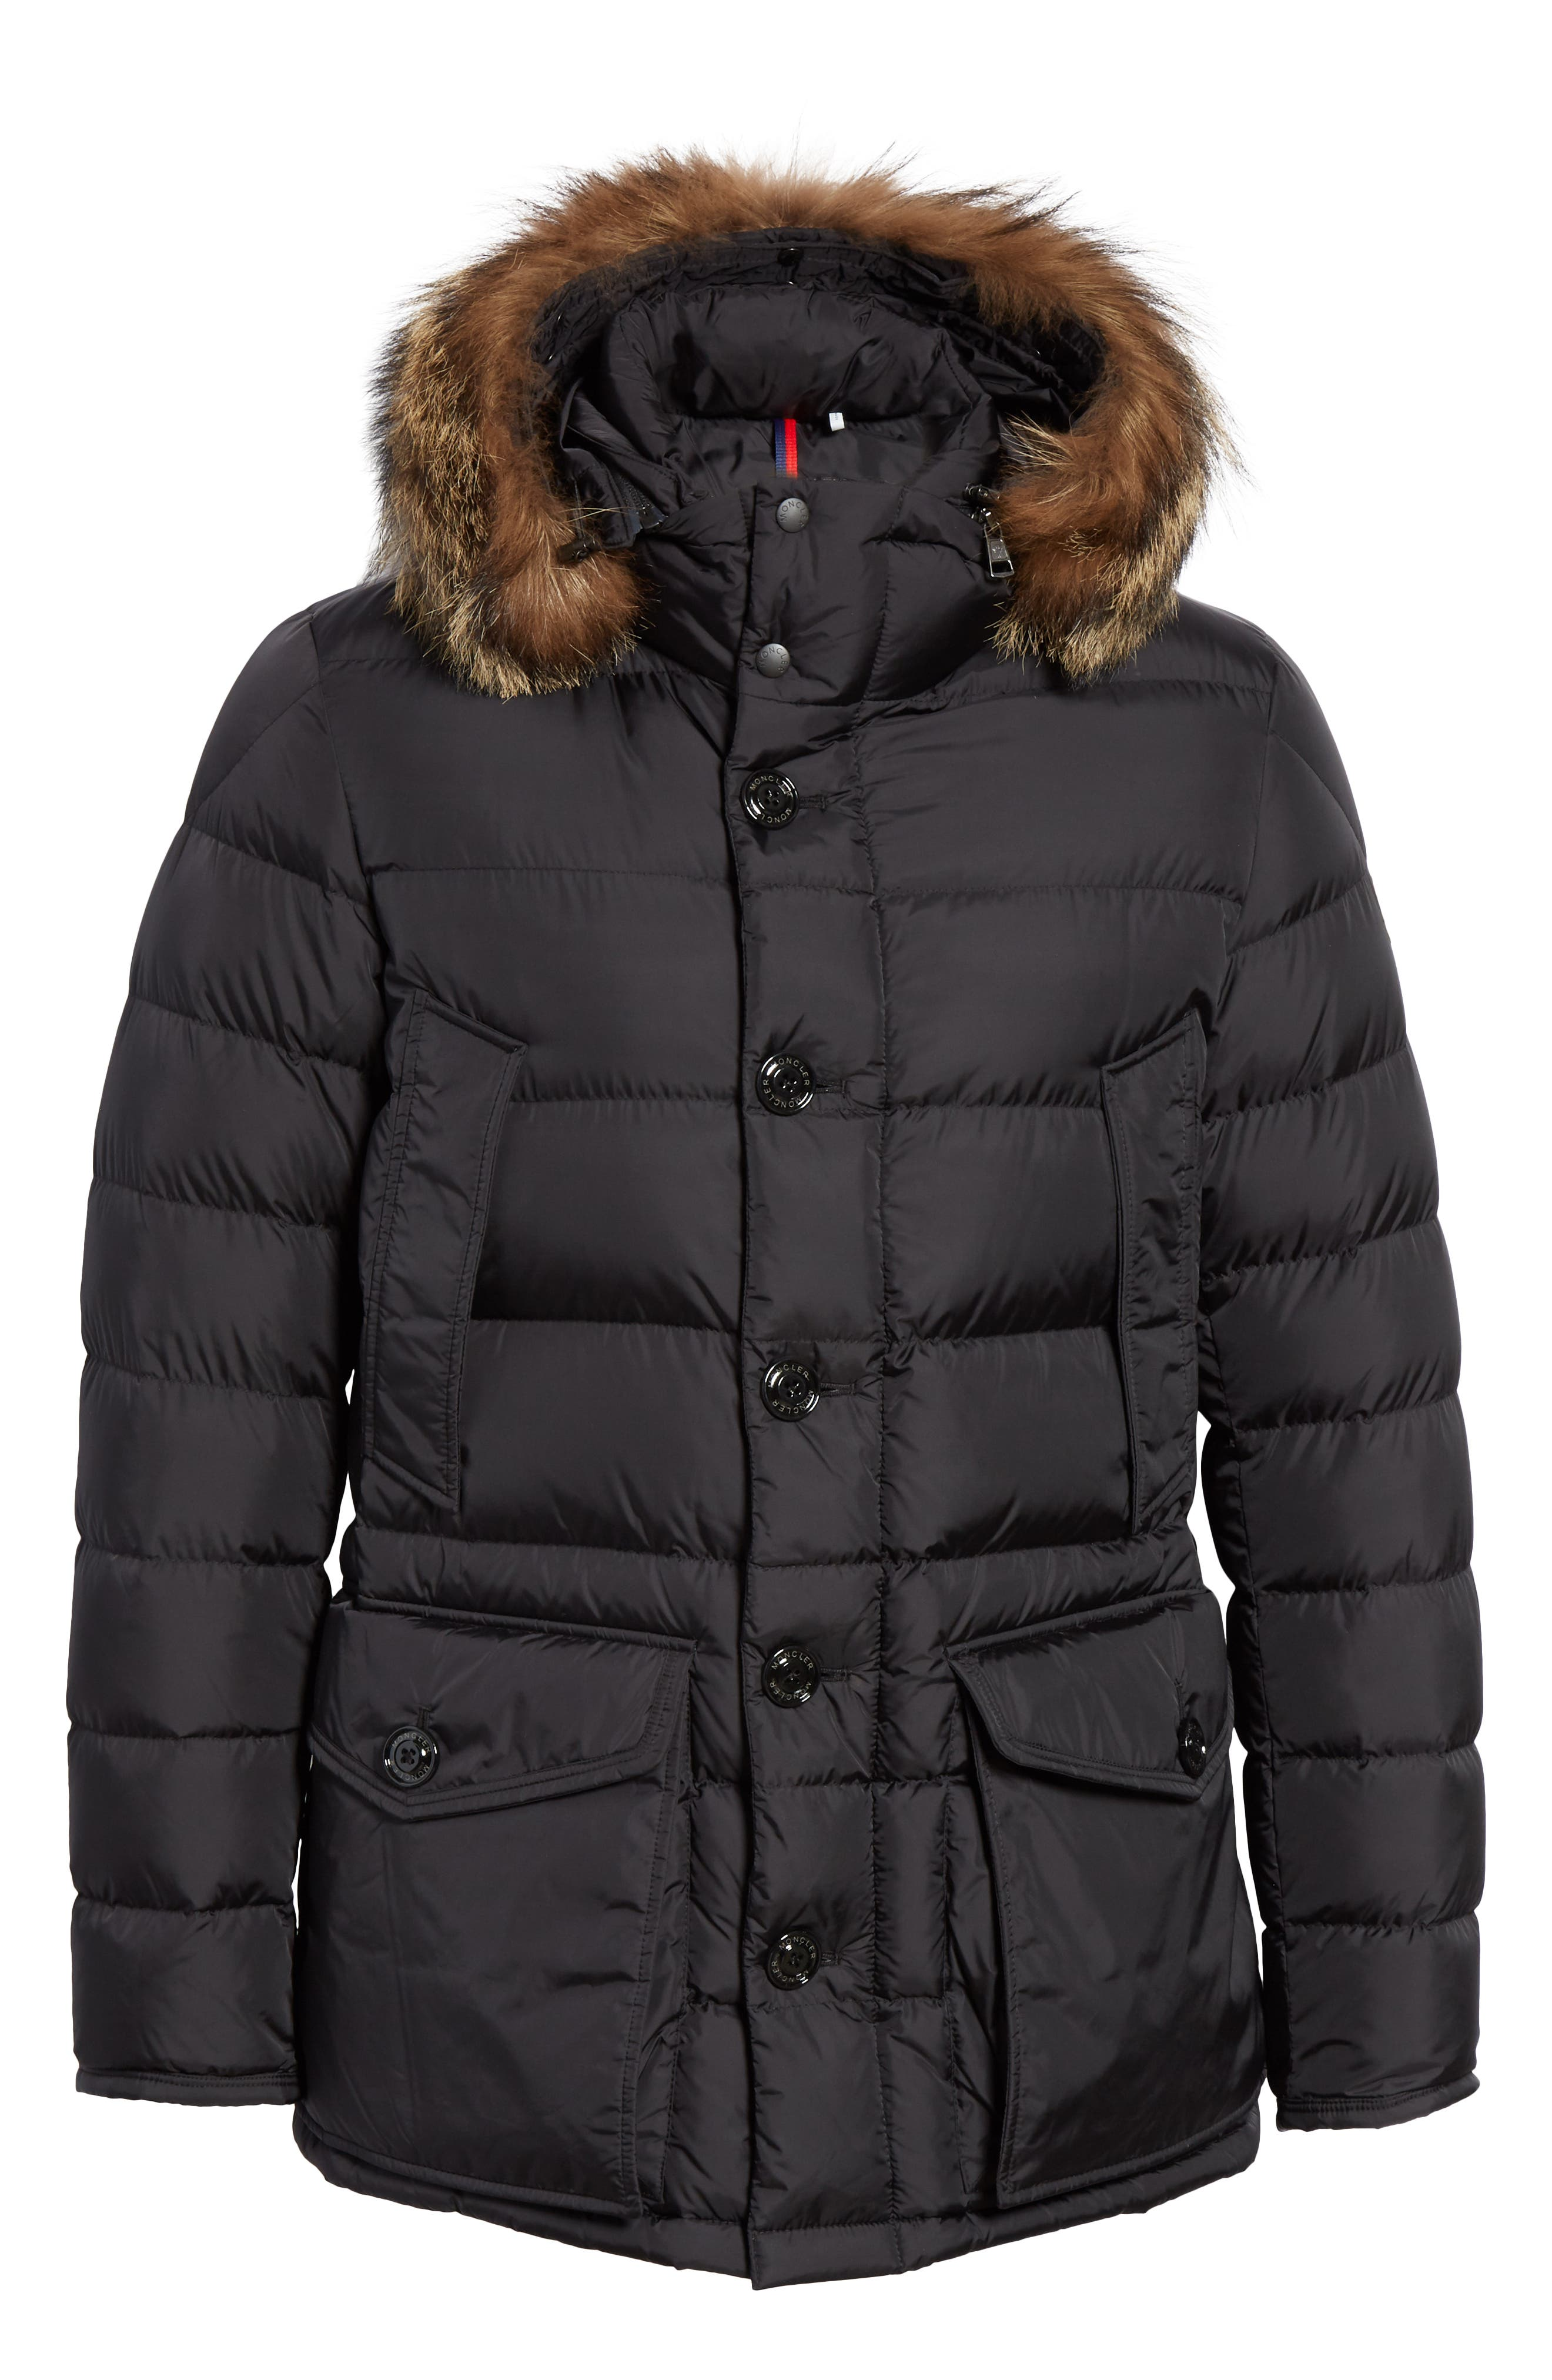 Cluny Giubbotto Down Parka with Genuine Coyote Fur Trim,                             Alternate thumbnail 5, color,                             001